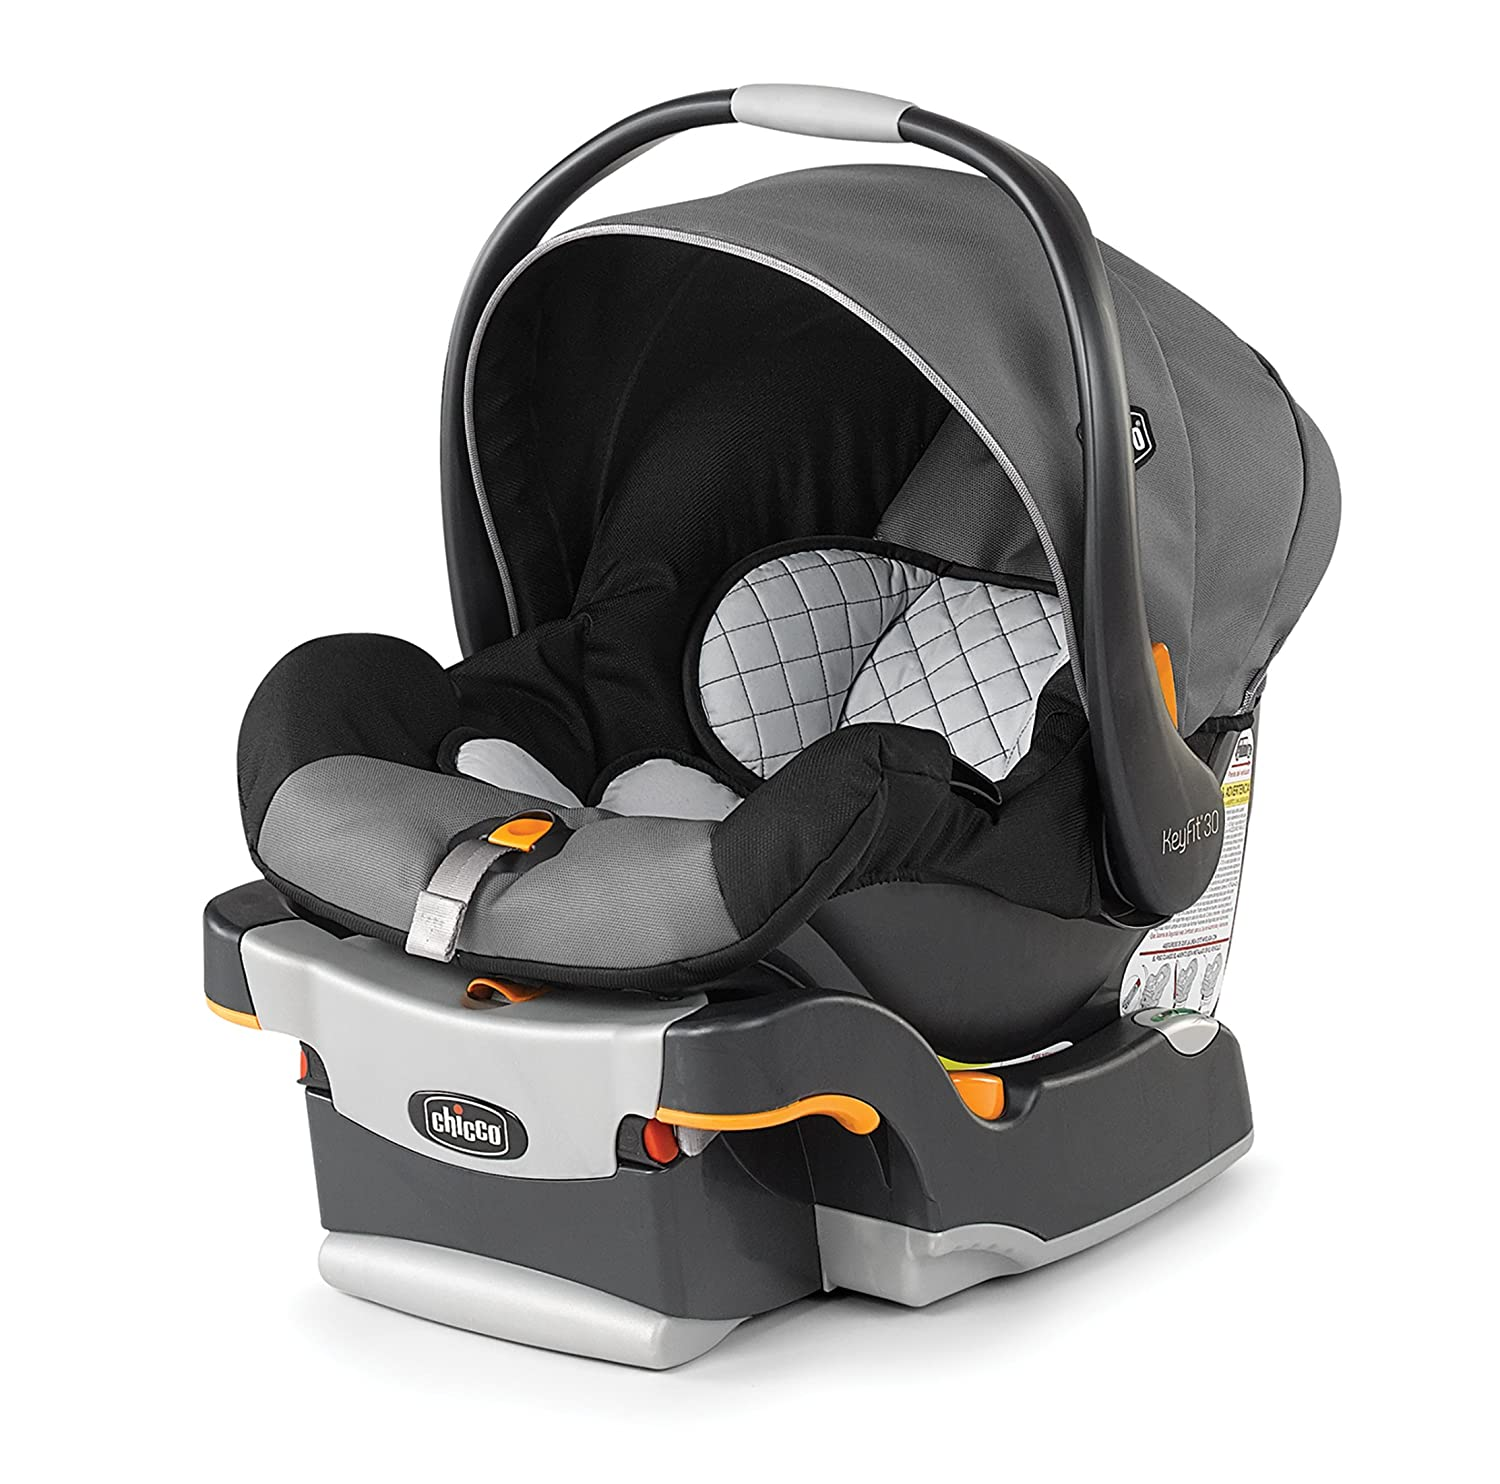 Top 7 Best Affordable Convertible Car Seats (2020 Reviews) 6